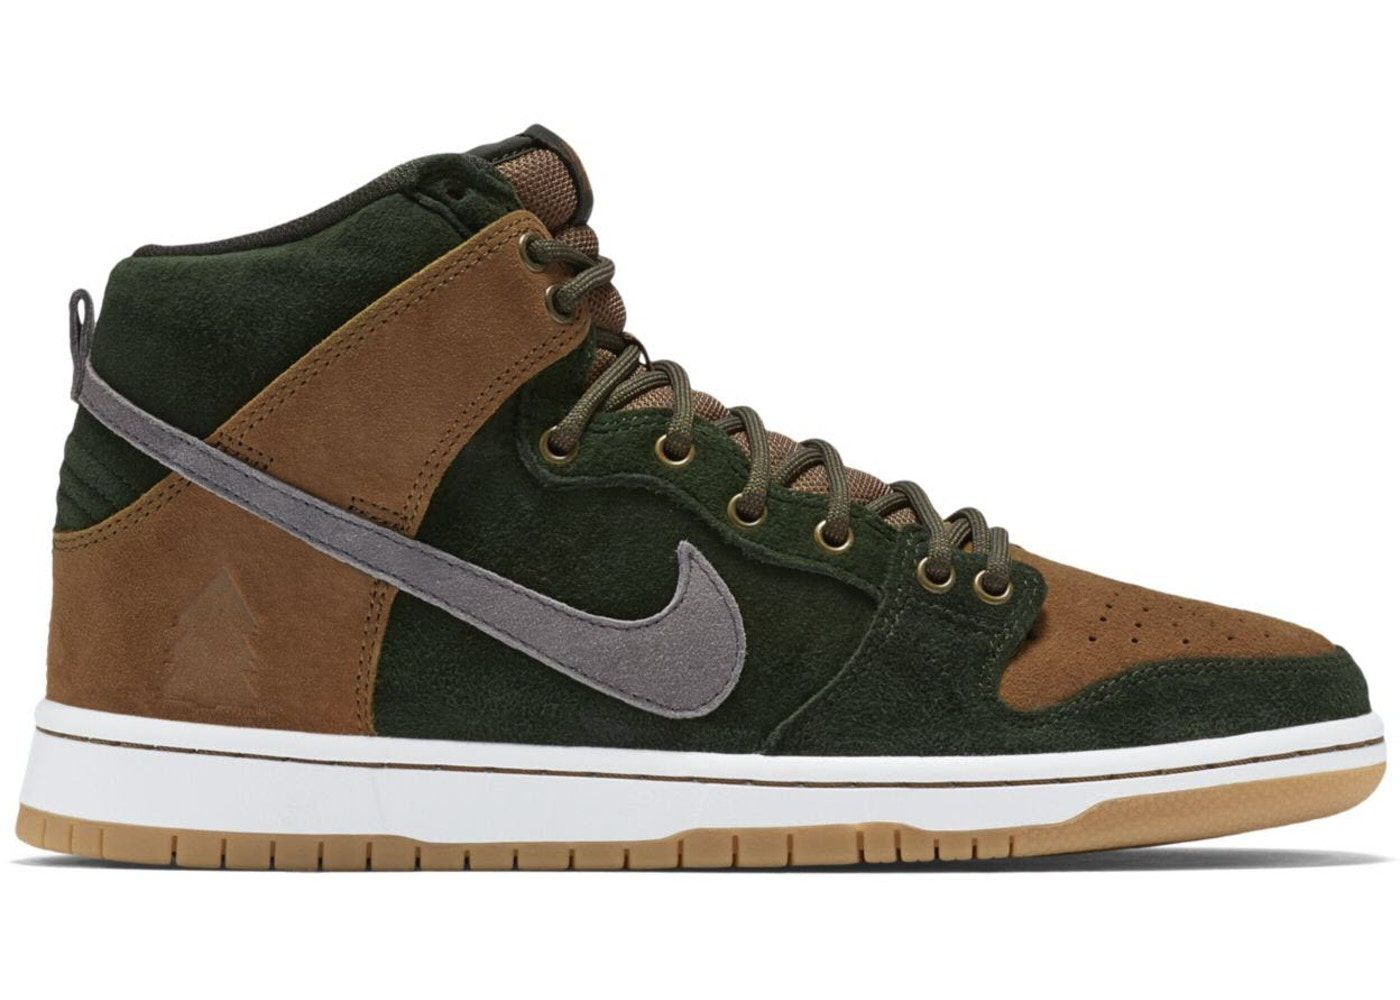 timeless design 89039 d4729 Nike Dunk SB High Homegrown Ale Brown